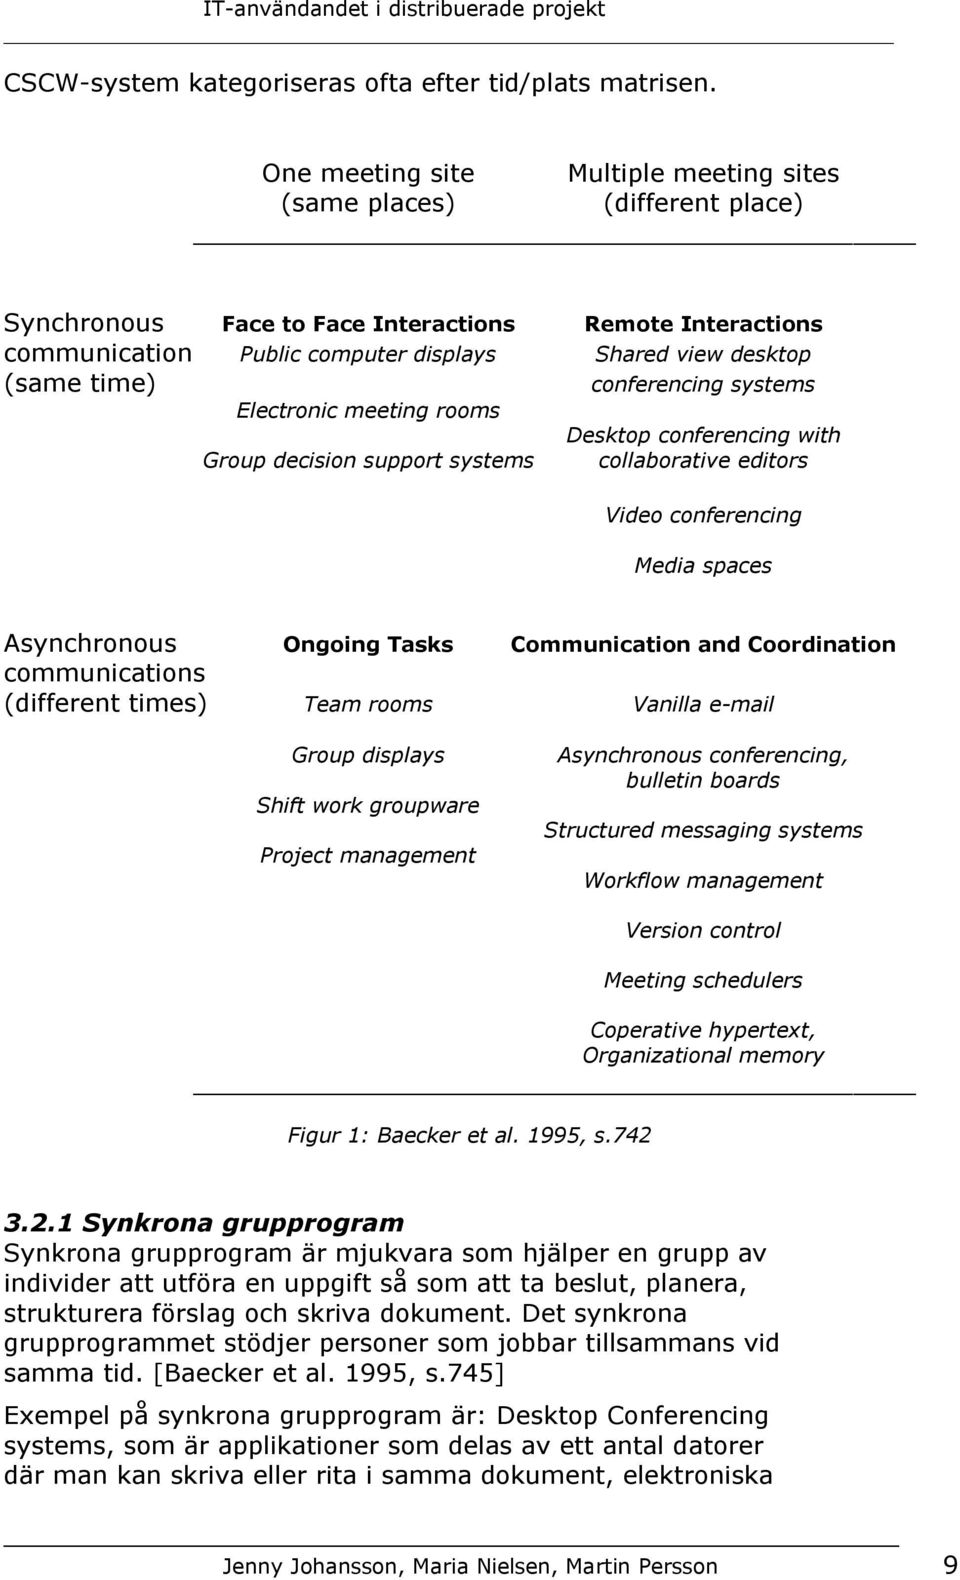 time) conferencing systems Electronic meeting rooms Desktop conferencing with Group decision support systems collaborative editors Video conferencing Media spaces Asynchronous Ongoing Tasks